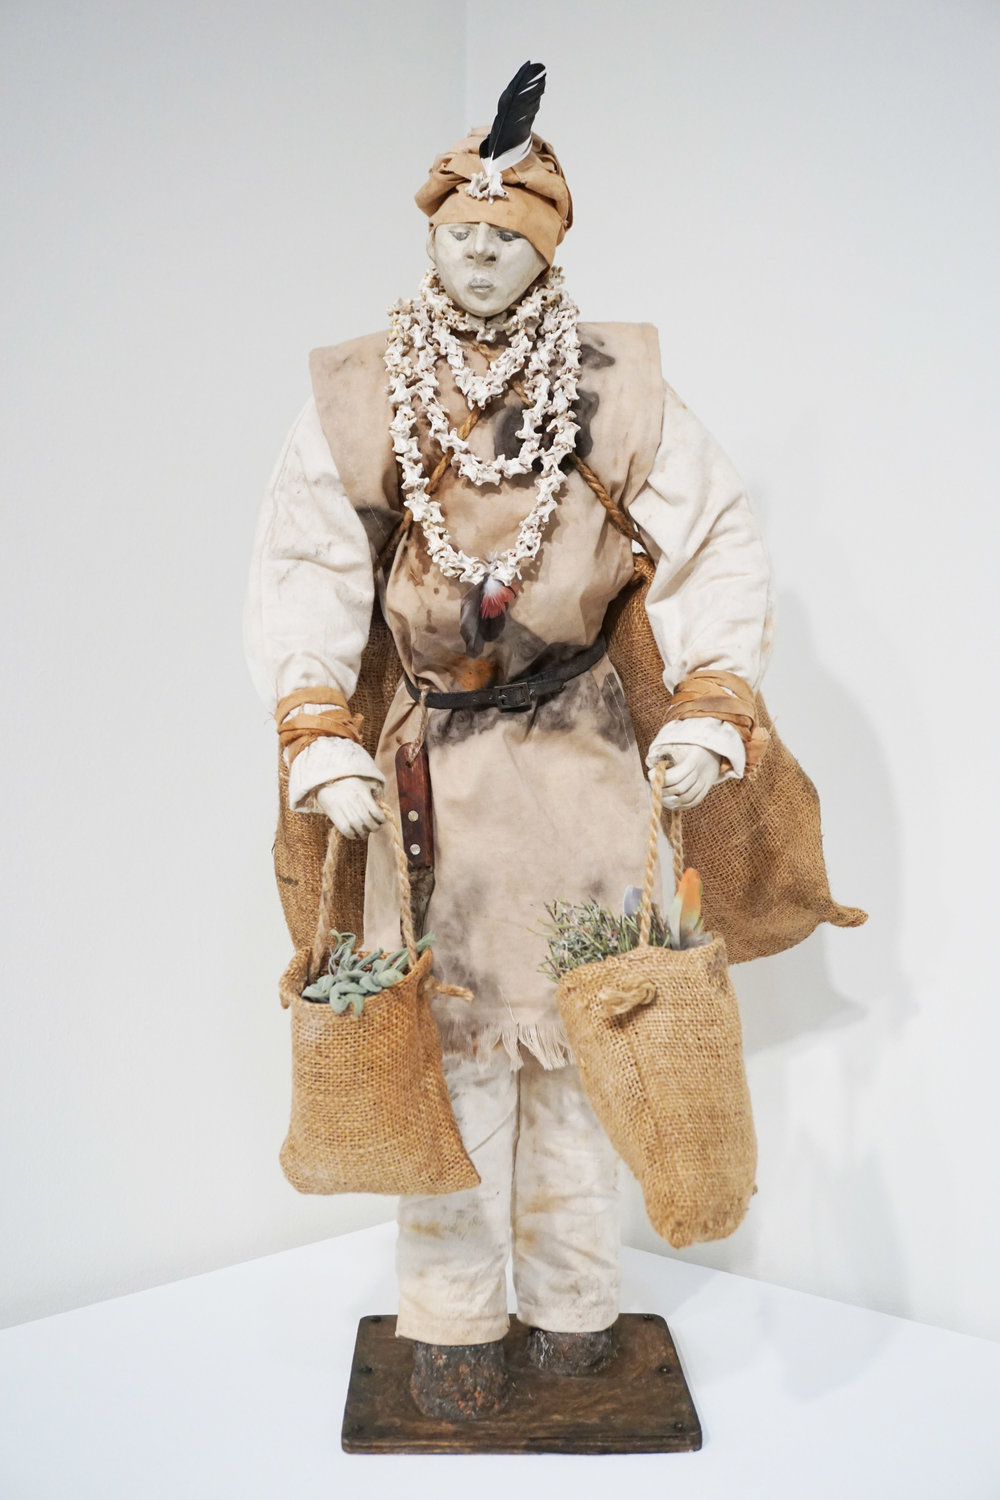 15. Cathy Swioklo,  The Collector , Porcelain, natural dyed cloth, metal, wood, bone, leather, plant material, feathers, paper maché $800